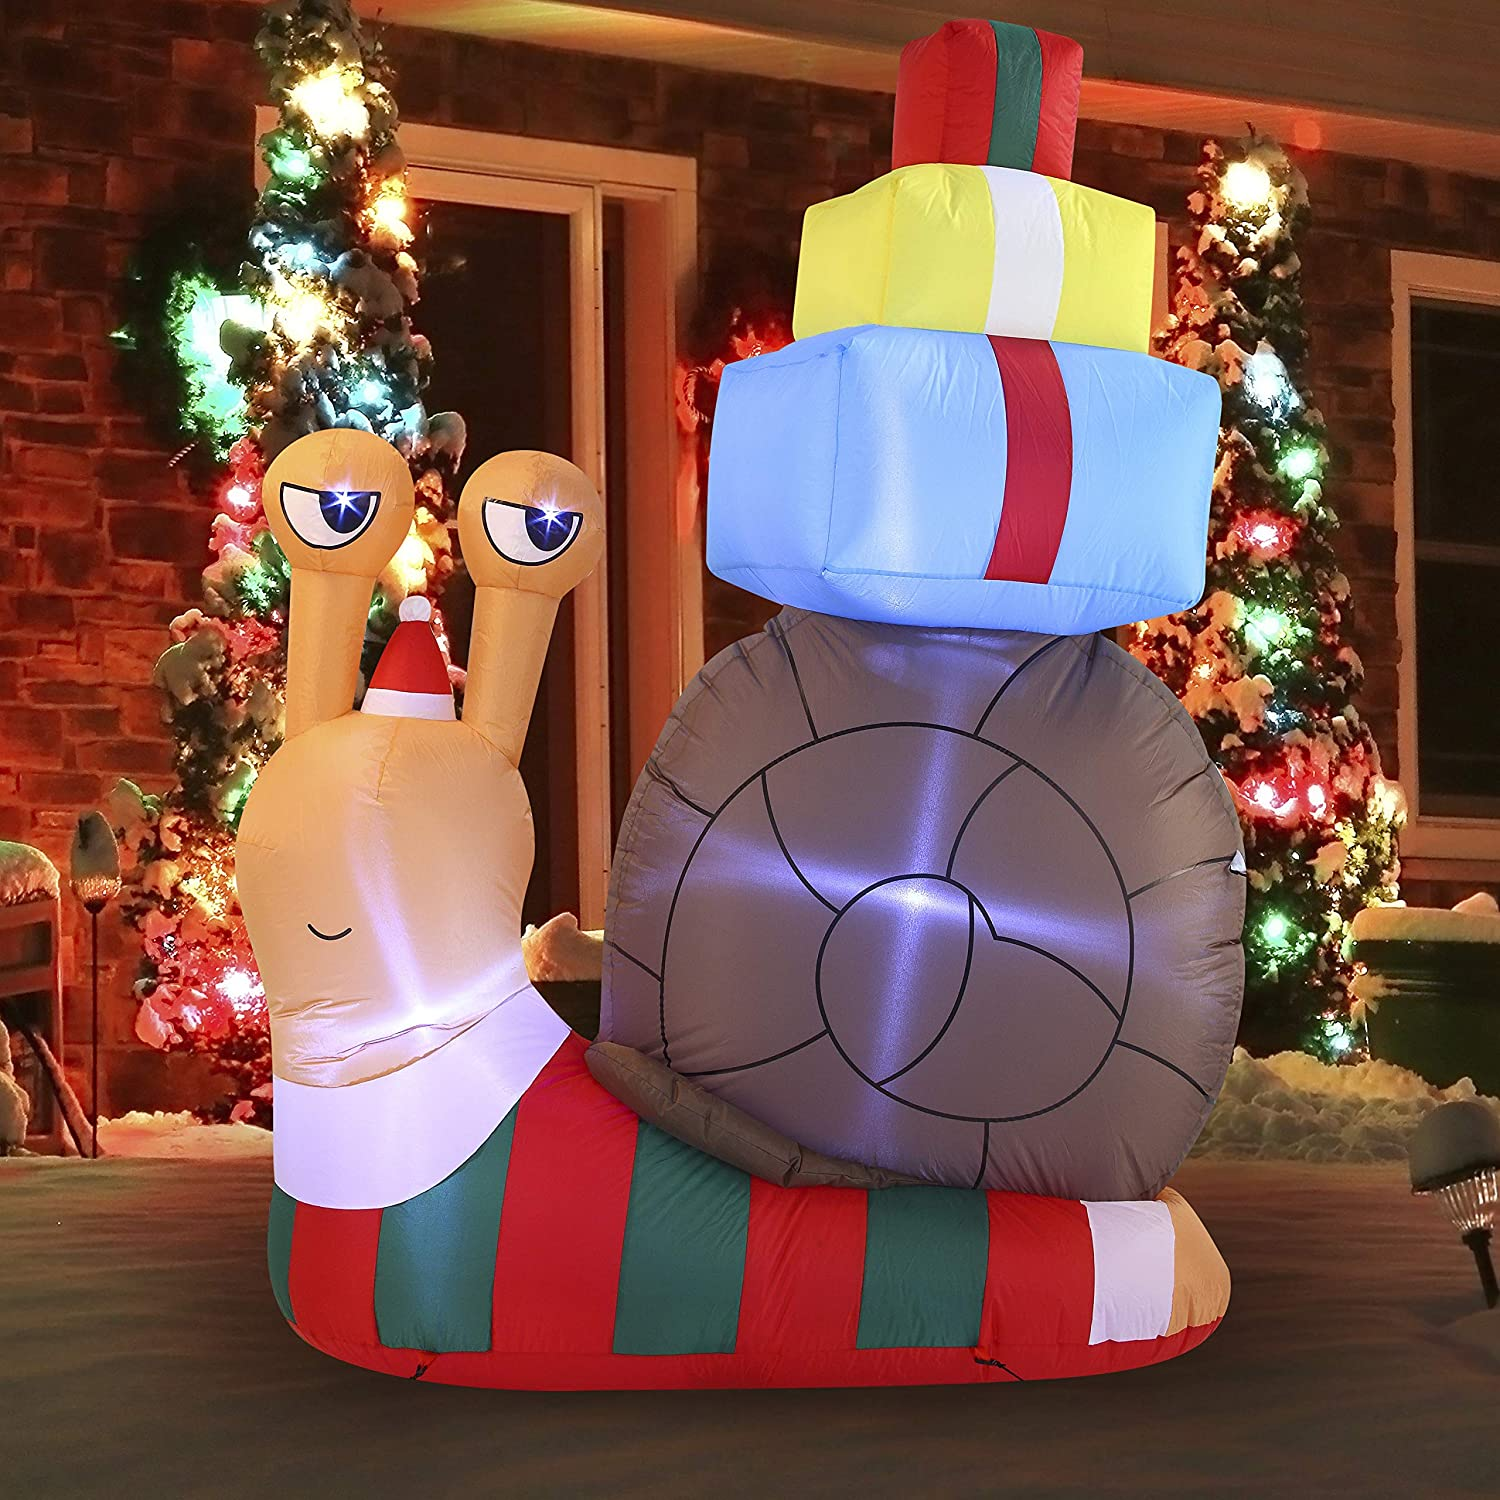 Joiedomi Christmas Inflatable Decoration 6ft Cute Snail with a Stack of Gifts Inflatable with Build-in LEDs Blow Up Inflatables for Xmas Party Indoor, Outdoor, Yard, Garden, Lawn, Winter Decor